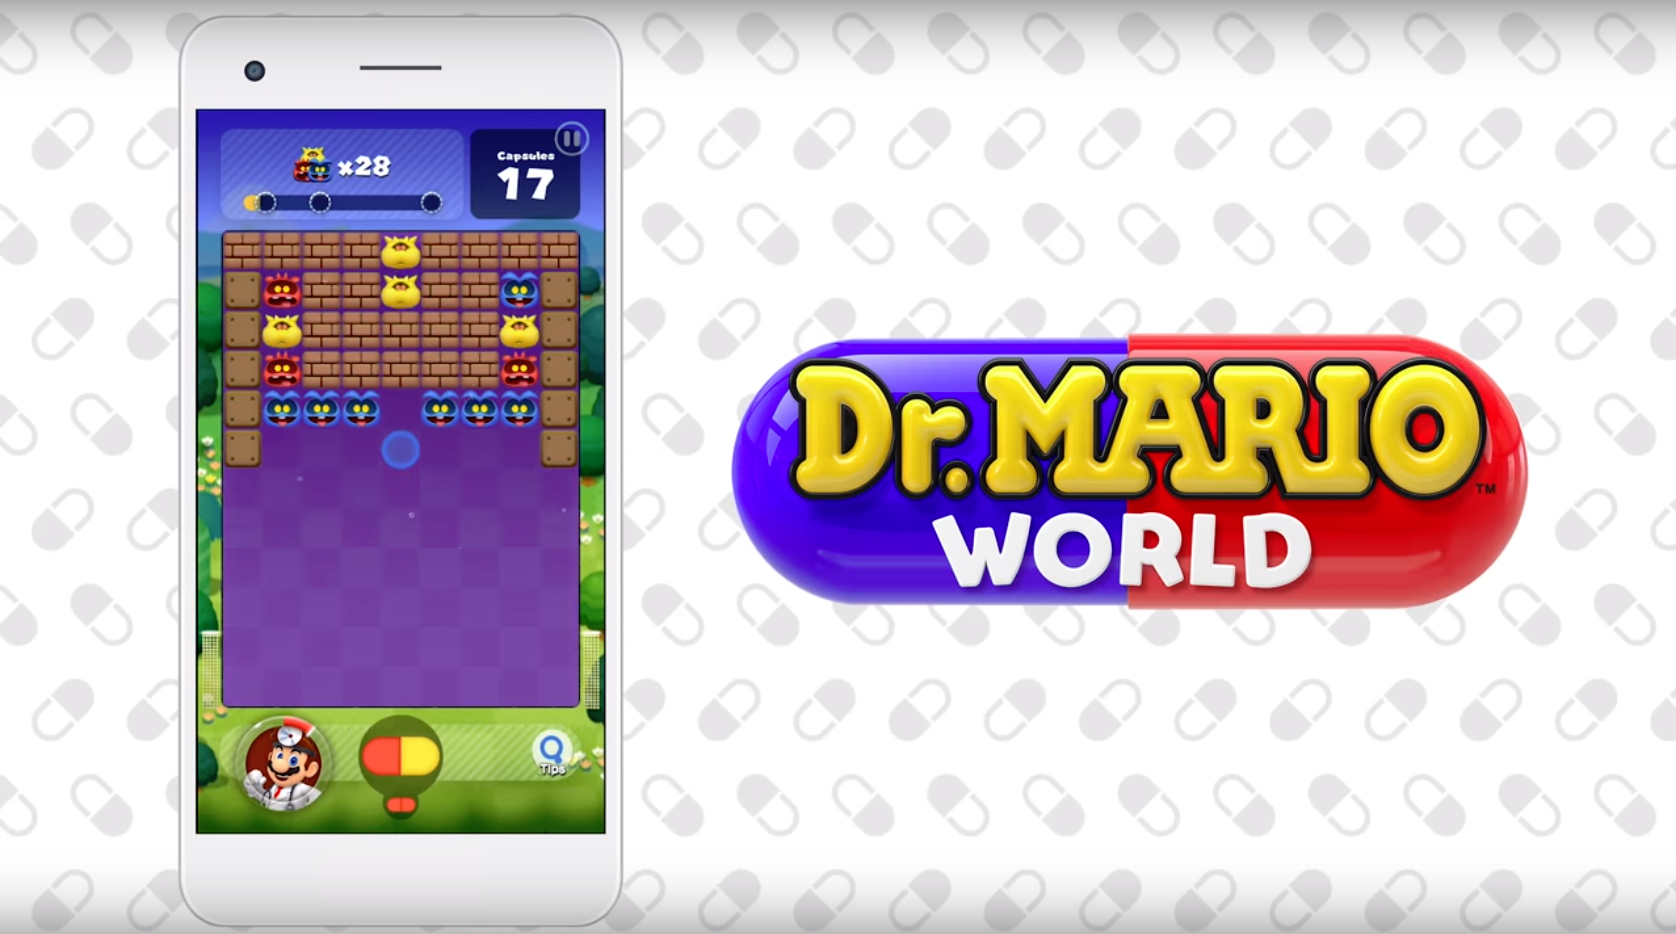 Dr. Mario World Copies The Worst Mechanics Of Mobile Gaming And It's Our Fault